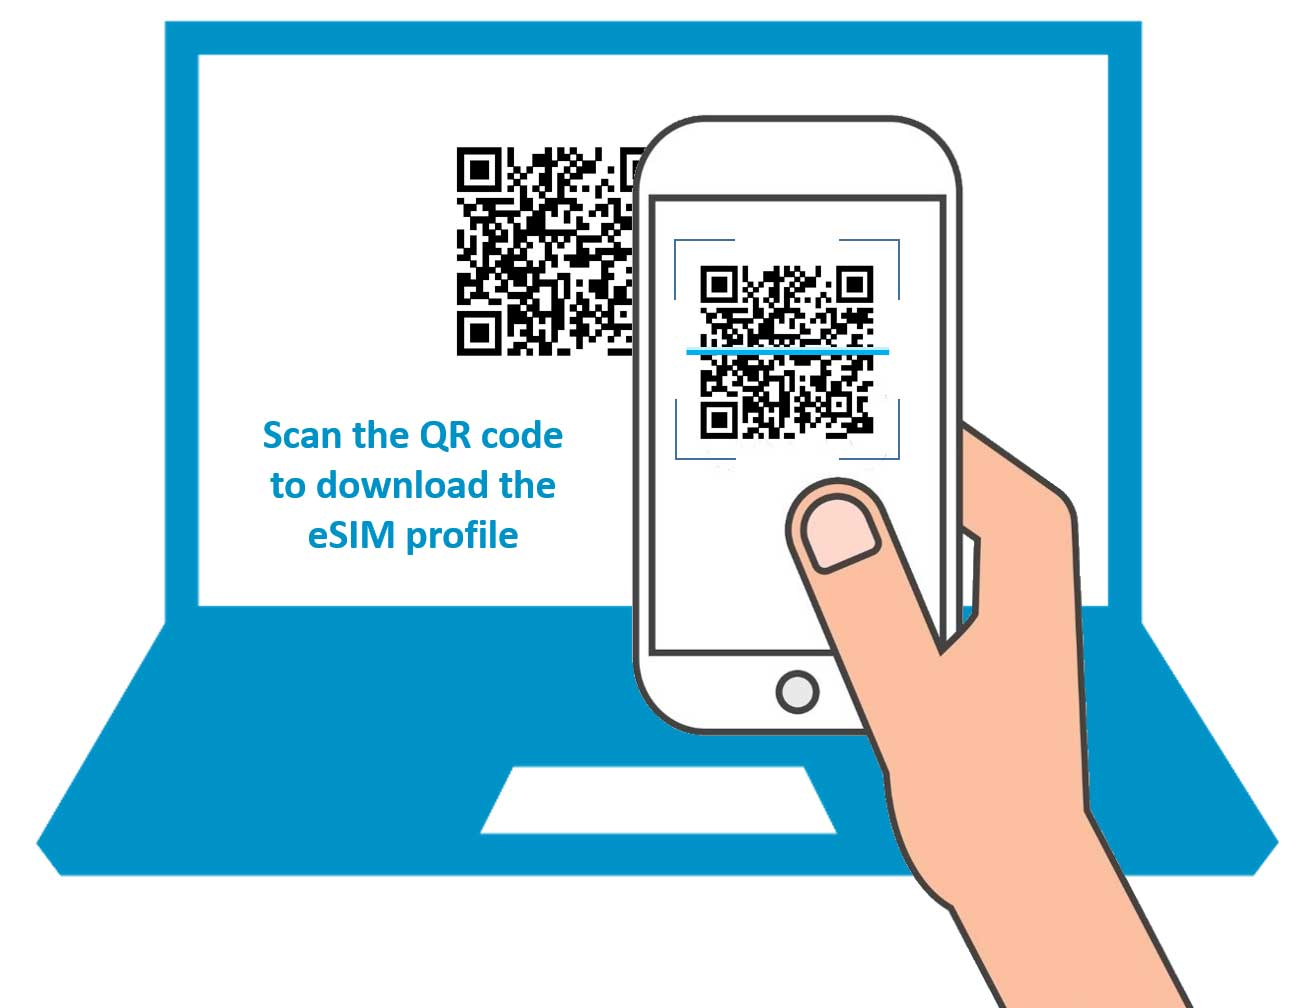 QR code is provided online